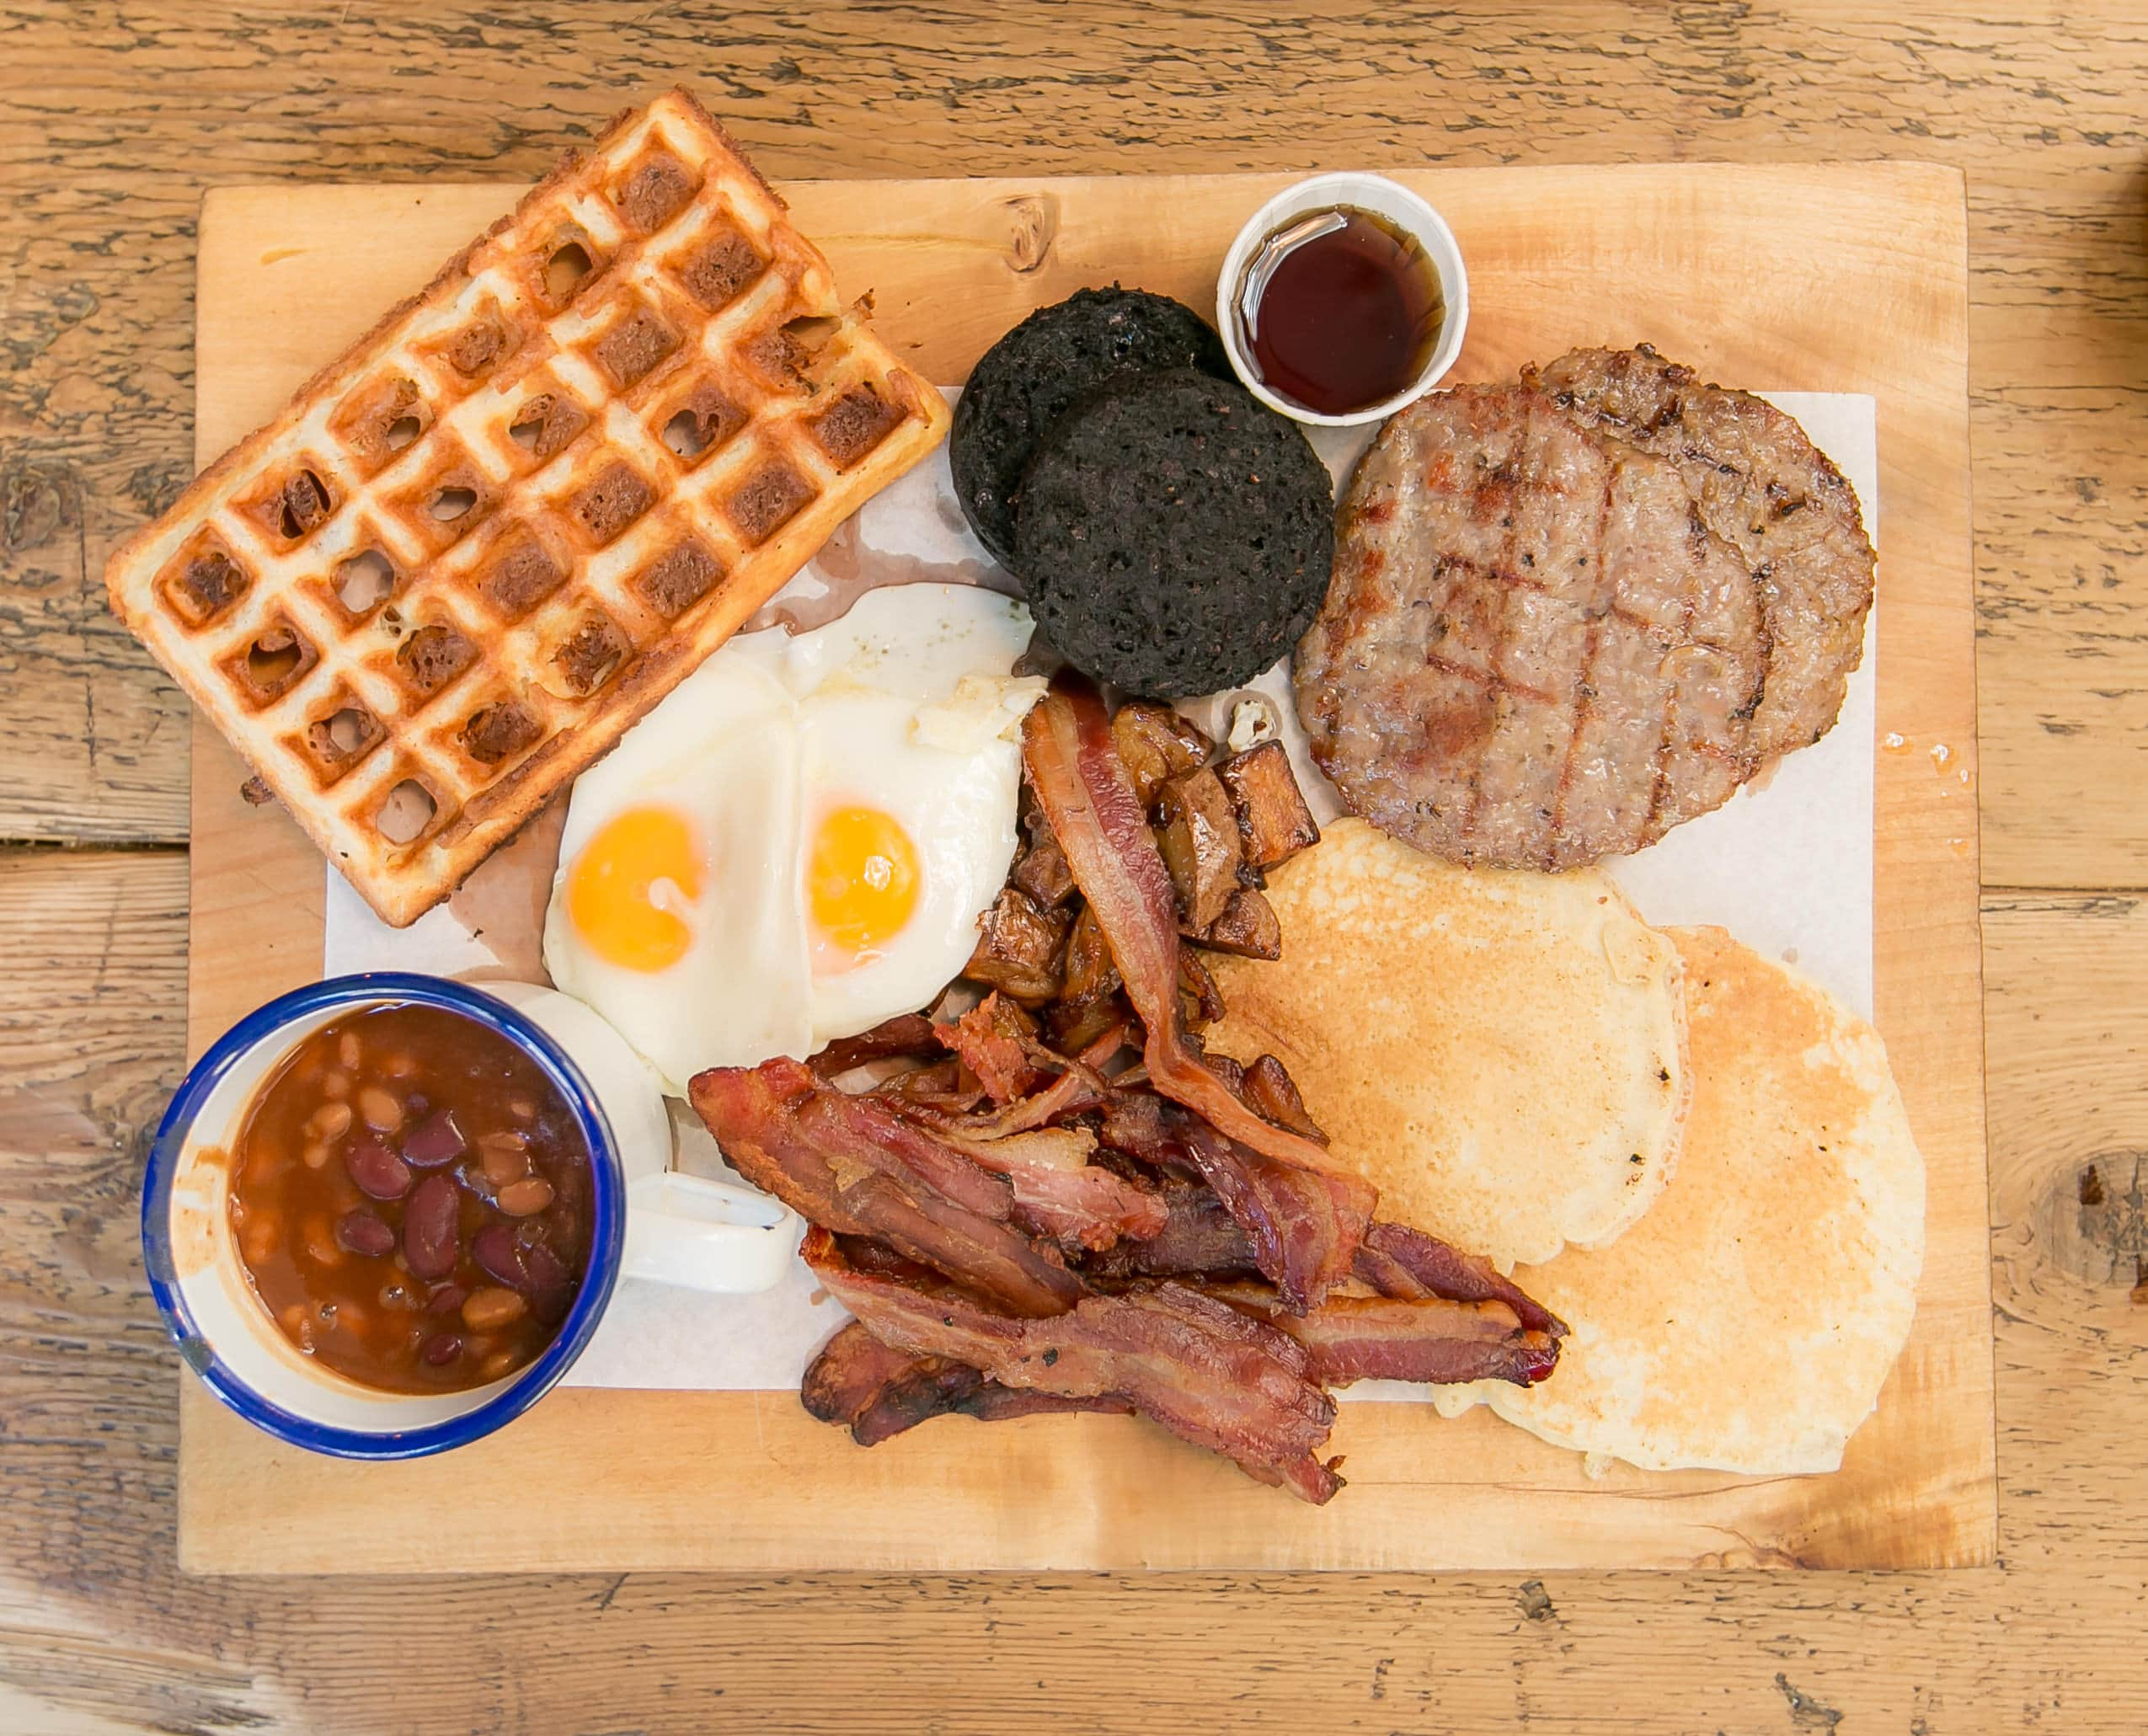 The All In breakfast at Longhorns, including: bacon, eggs, potatos, pancakes, sausages, beans, black pudding, waffle and maple syrup